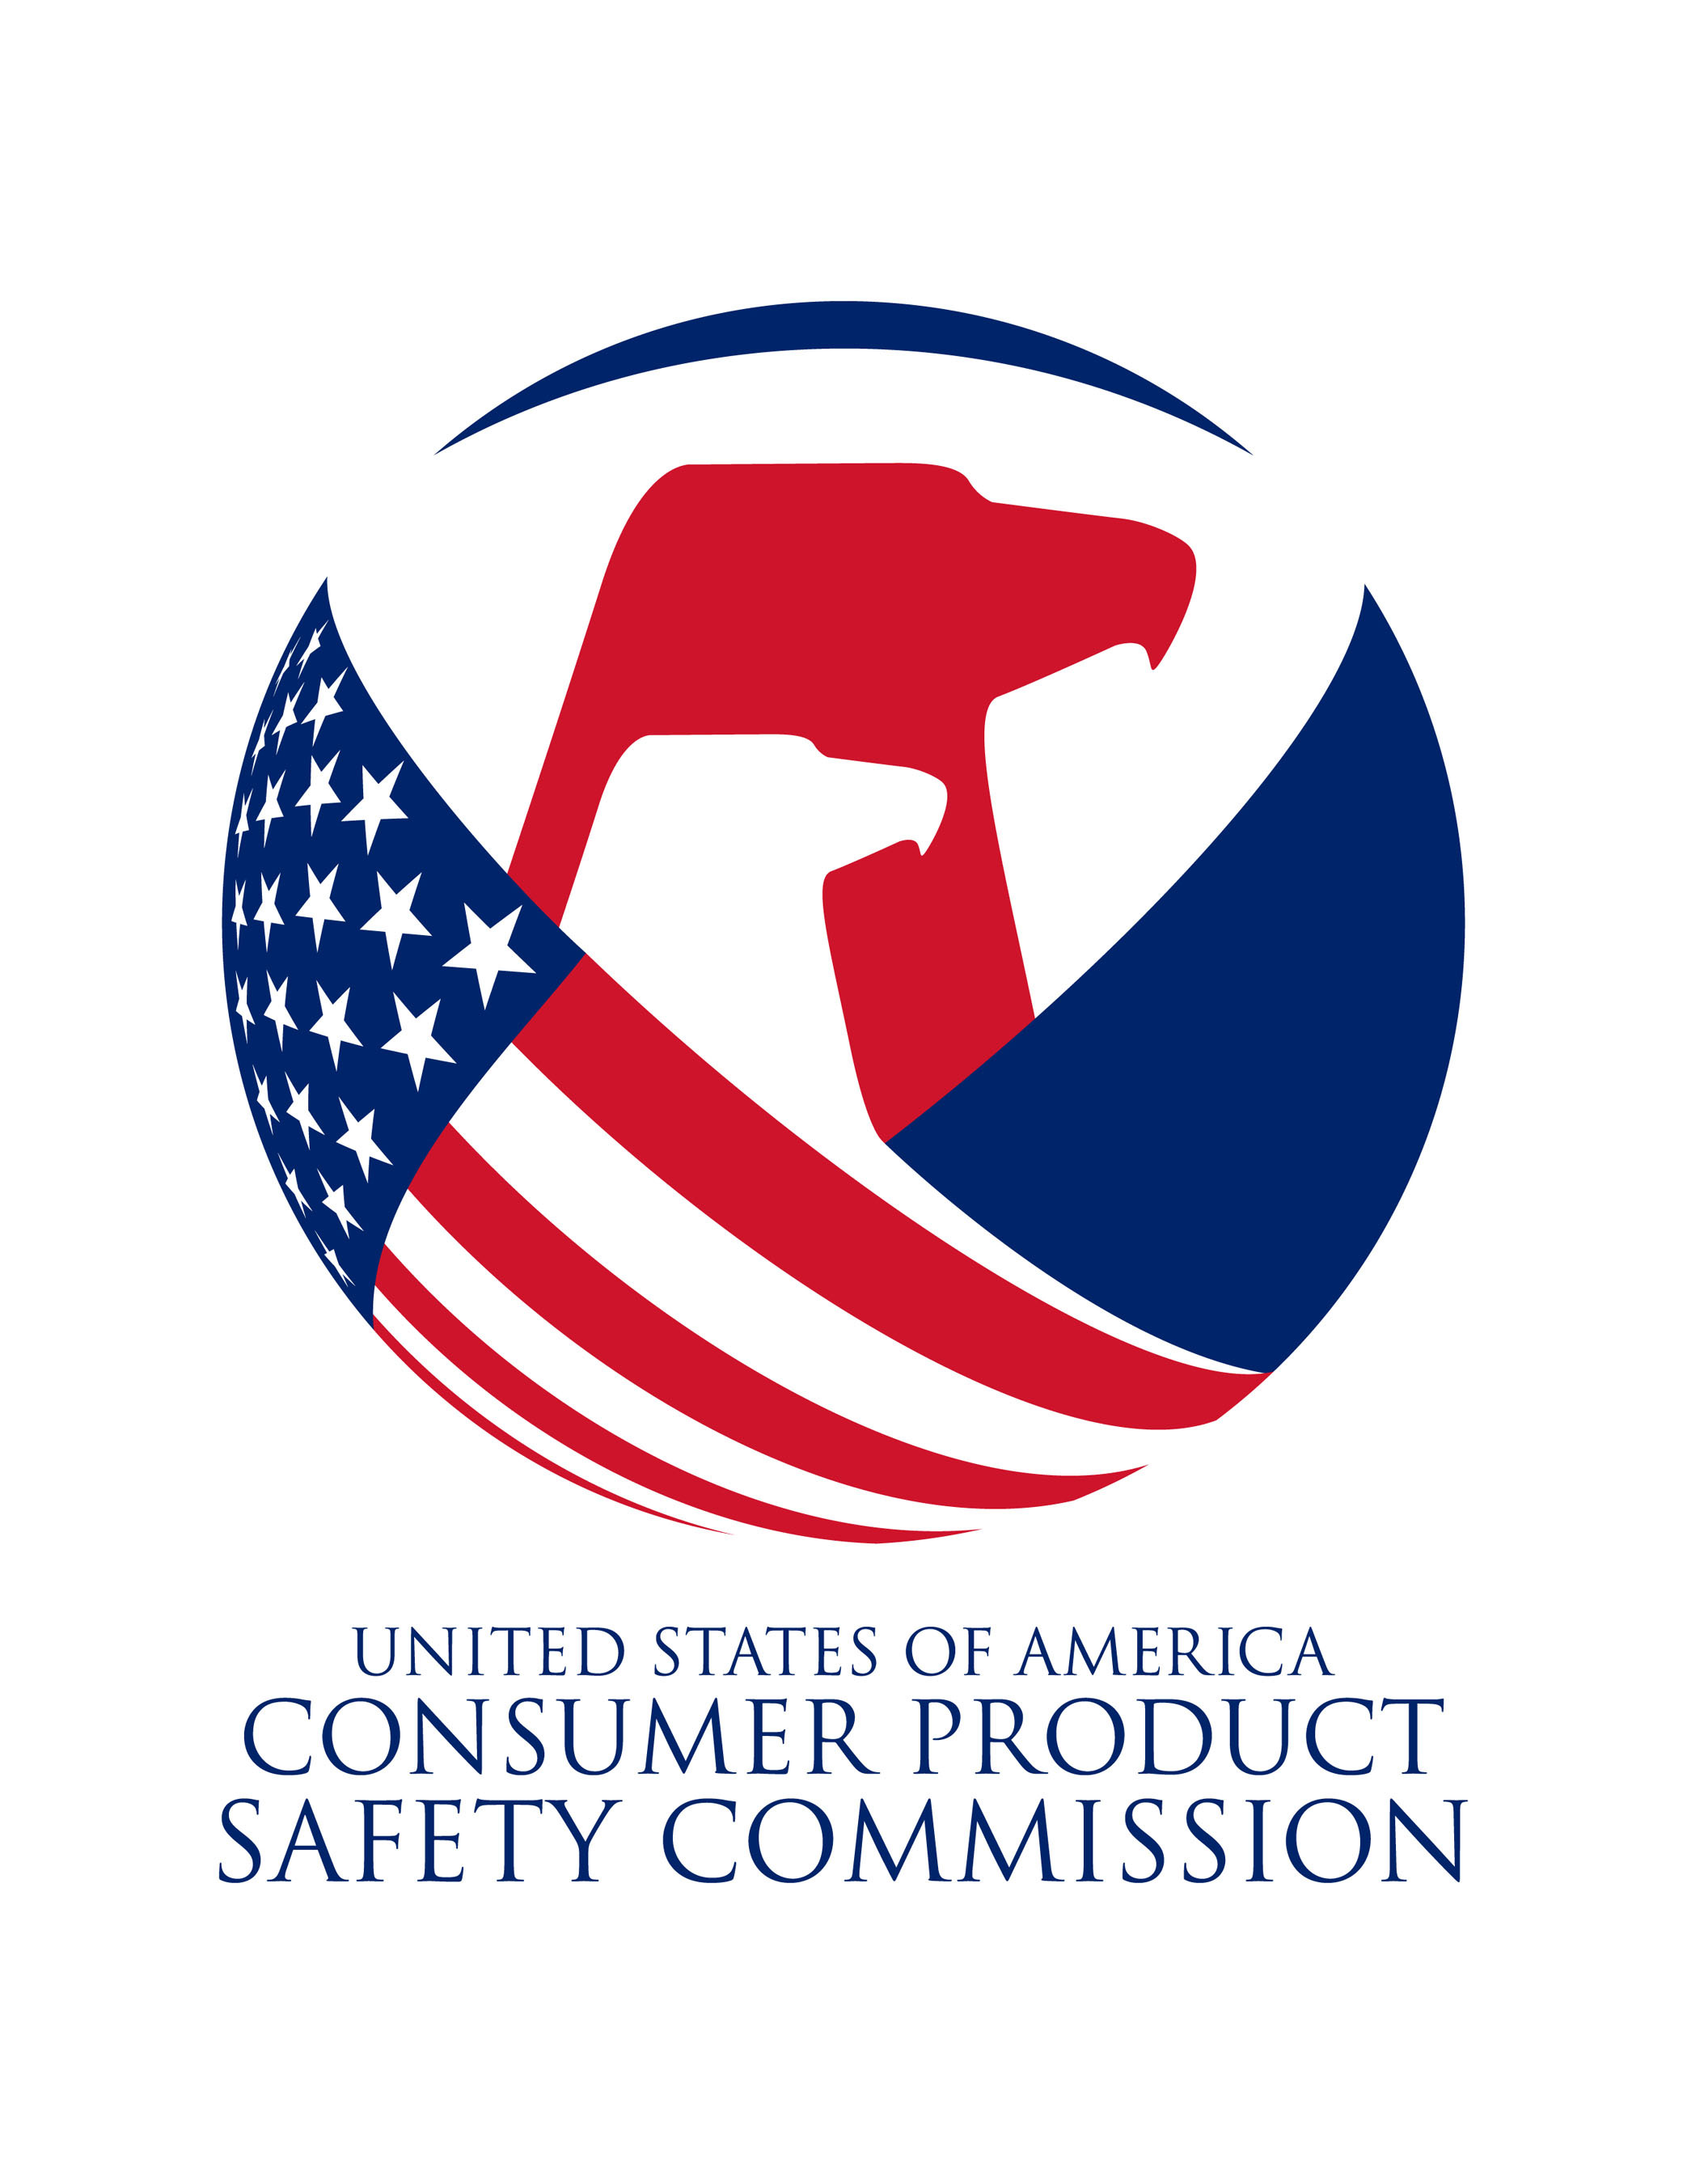 The U.S. Consumer Product Safety Commission is an independent federal agency created by Congress in 1973 and ...